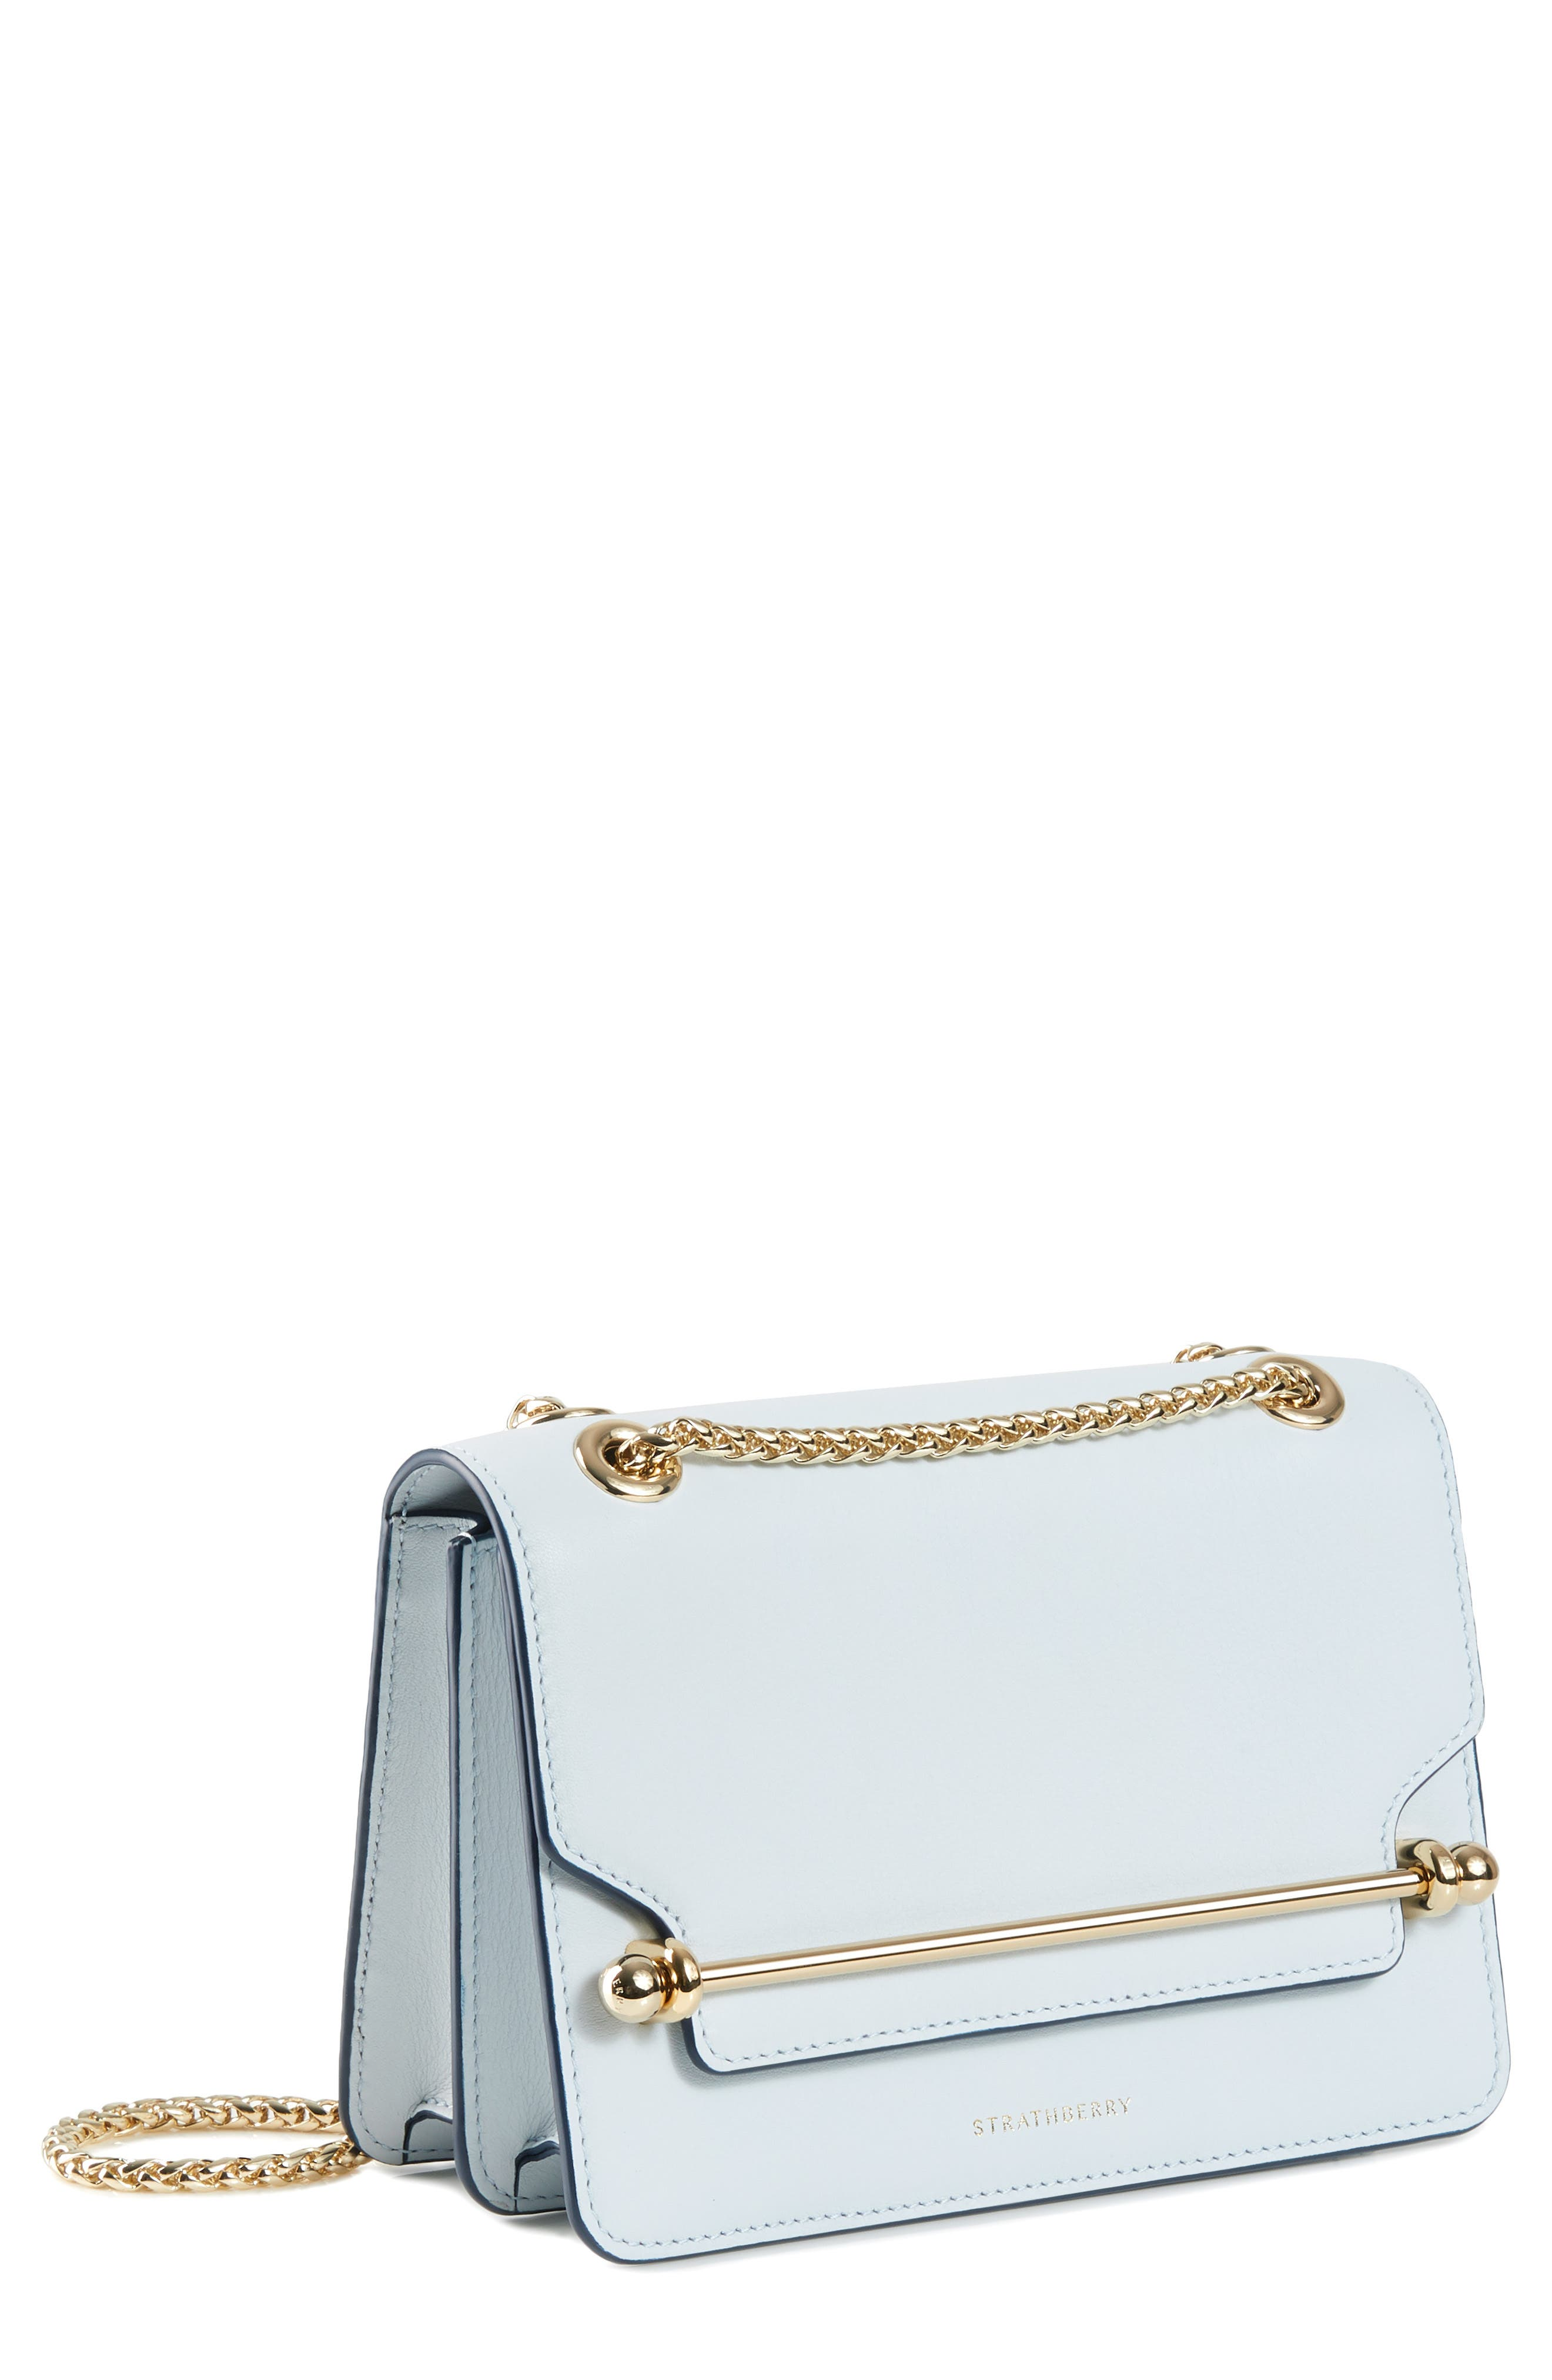 STRATHBERRY Mini East/West Leather Crossbody Bag, Main, color, ILLUSION BLUE